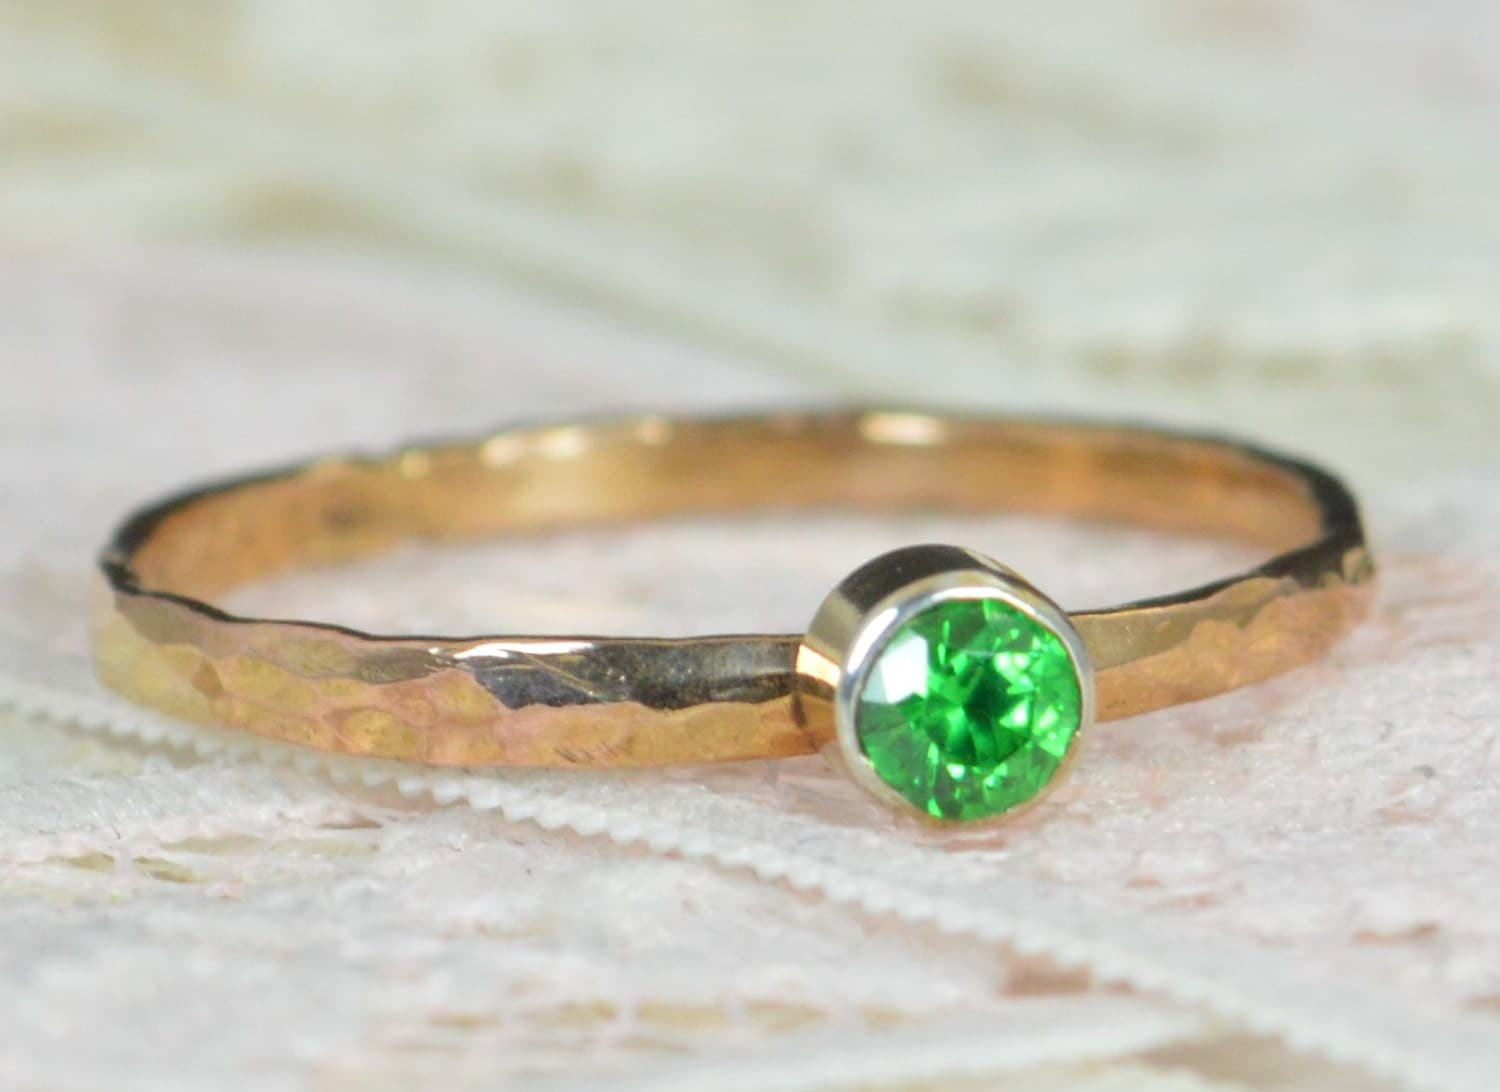 emerald engagement ring 14k rose gold emerald wedding ring set rustic wedding ring set may birthstone solid 14k emerald ring - Rustic Wedding Rings